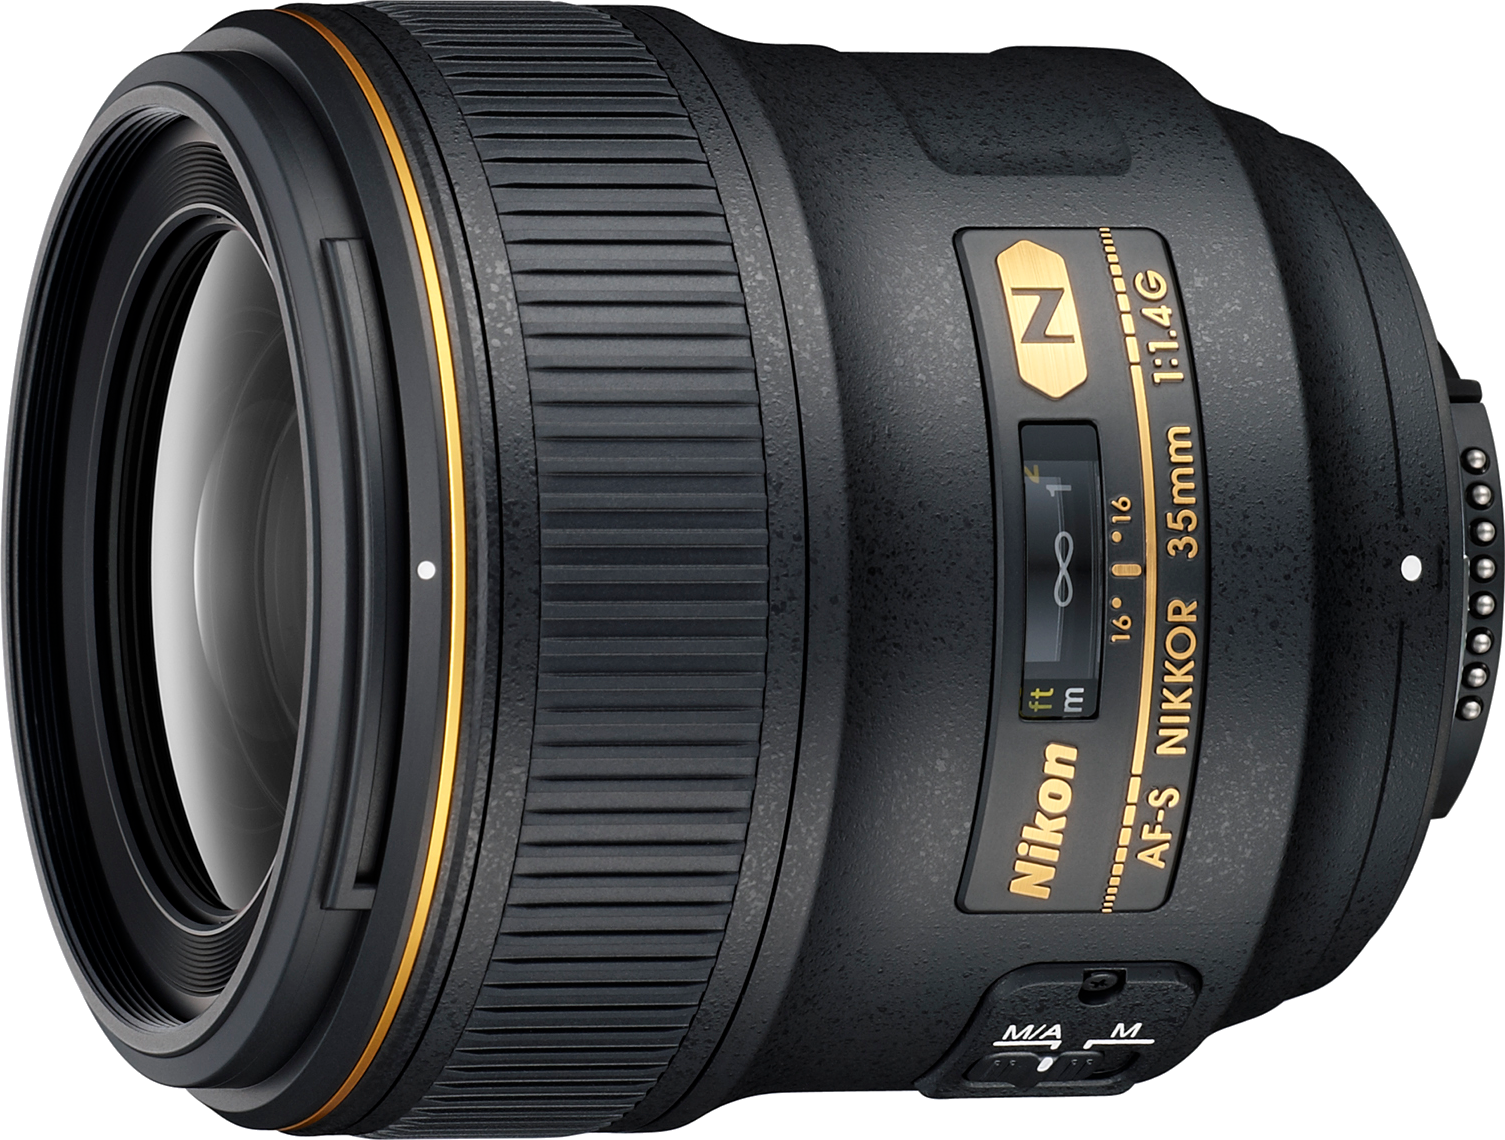 Fast f/1.4 on a classic focal length.  Great for FX and DX cameras.